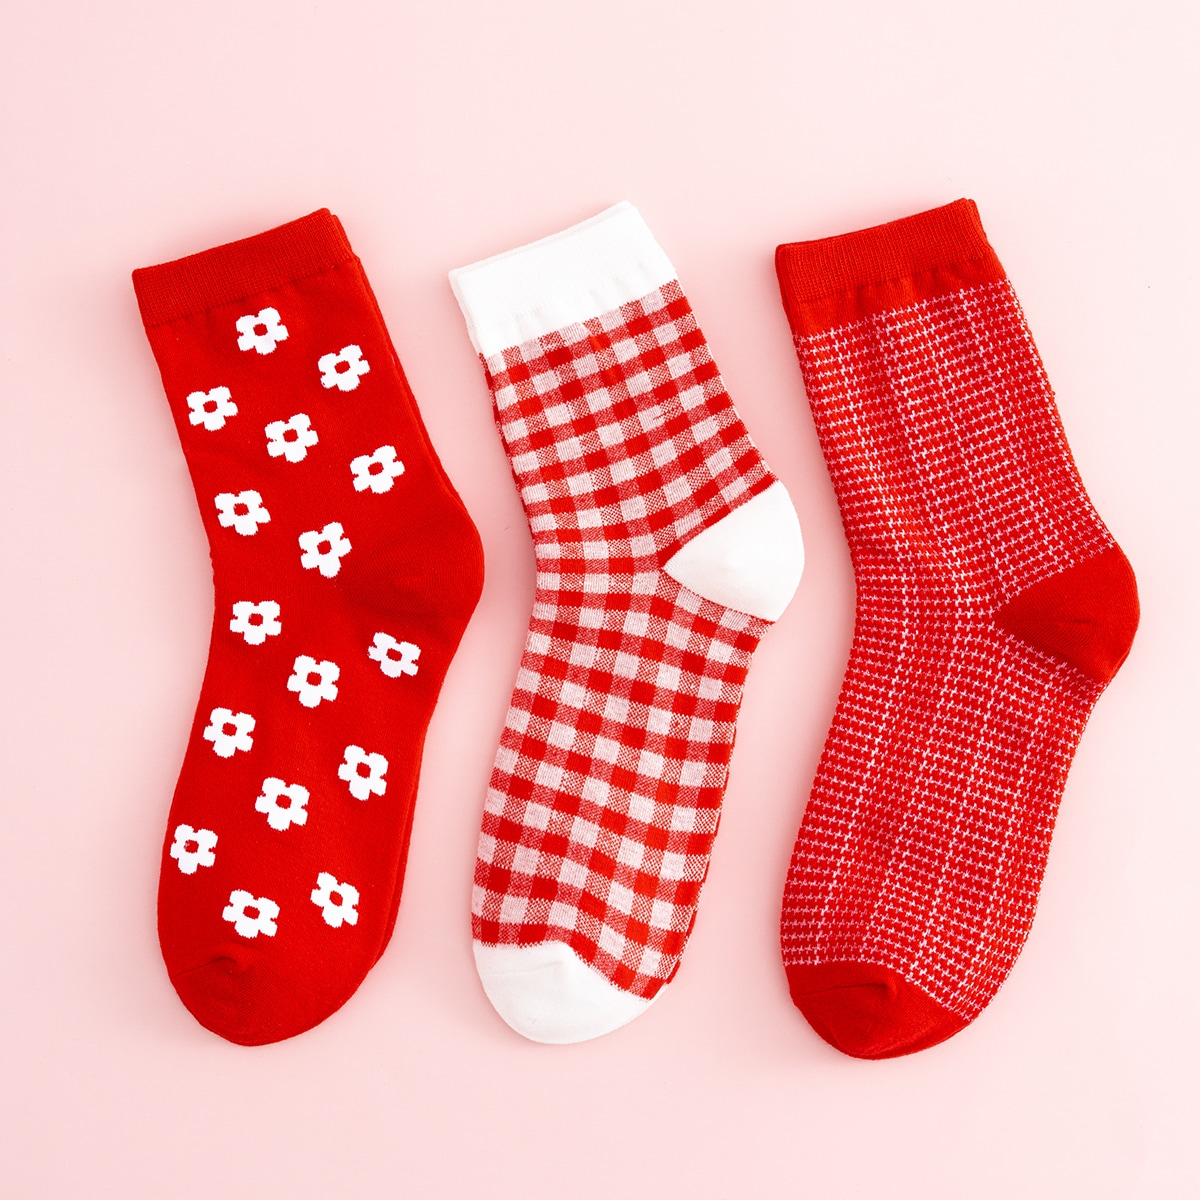 3pairs Flower Print Crew Socks, SHEIN  - buy with discount